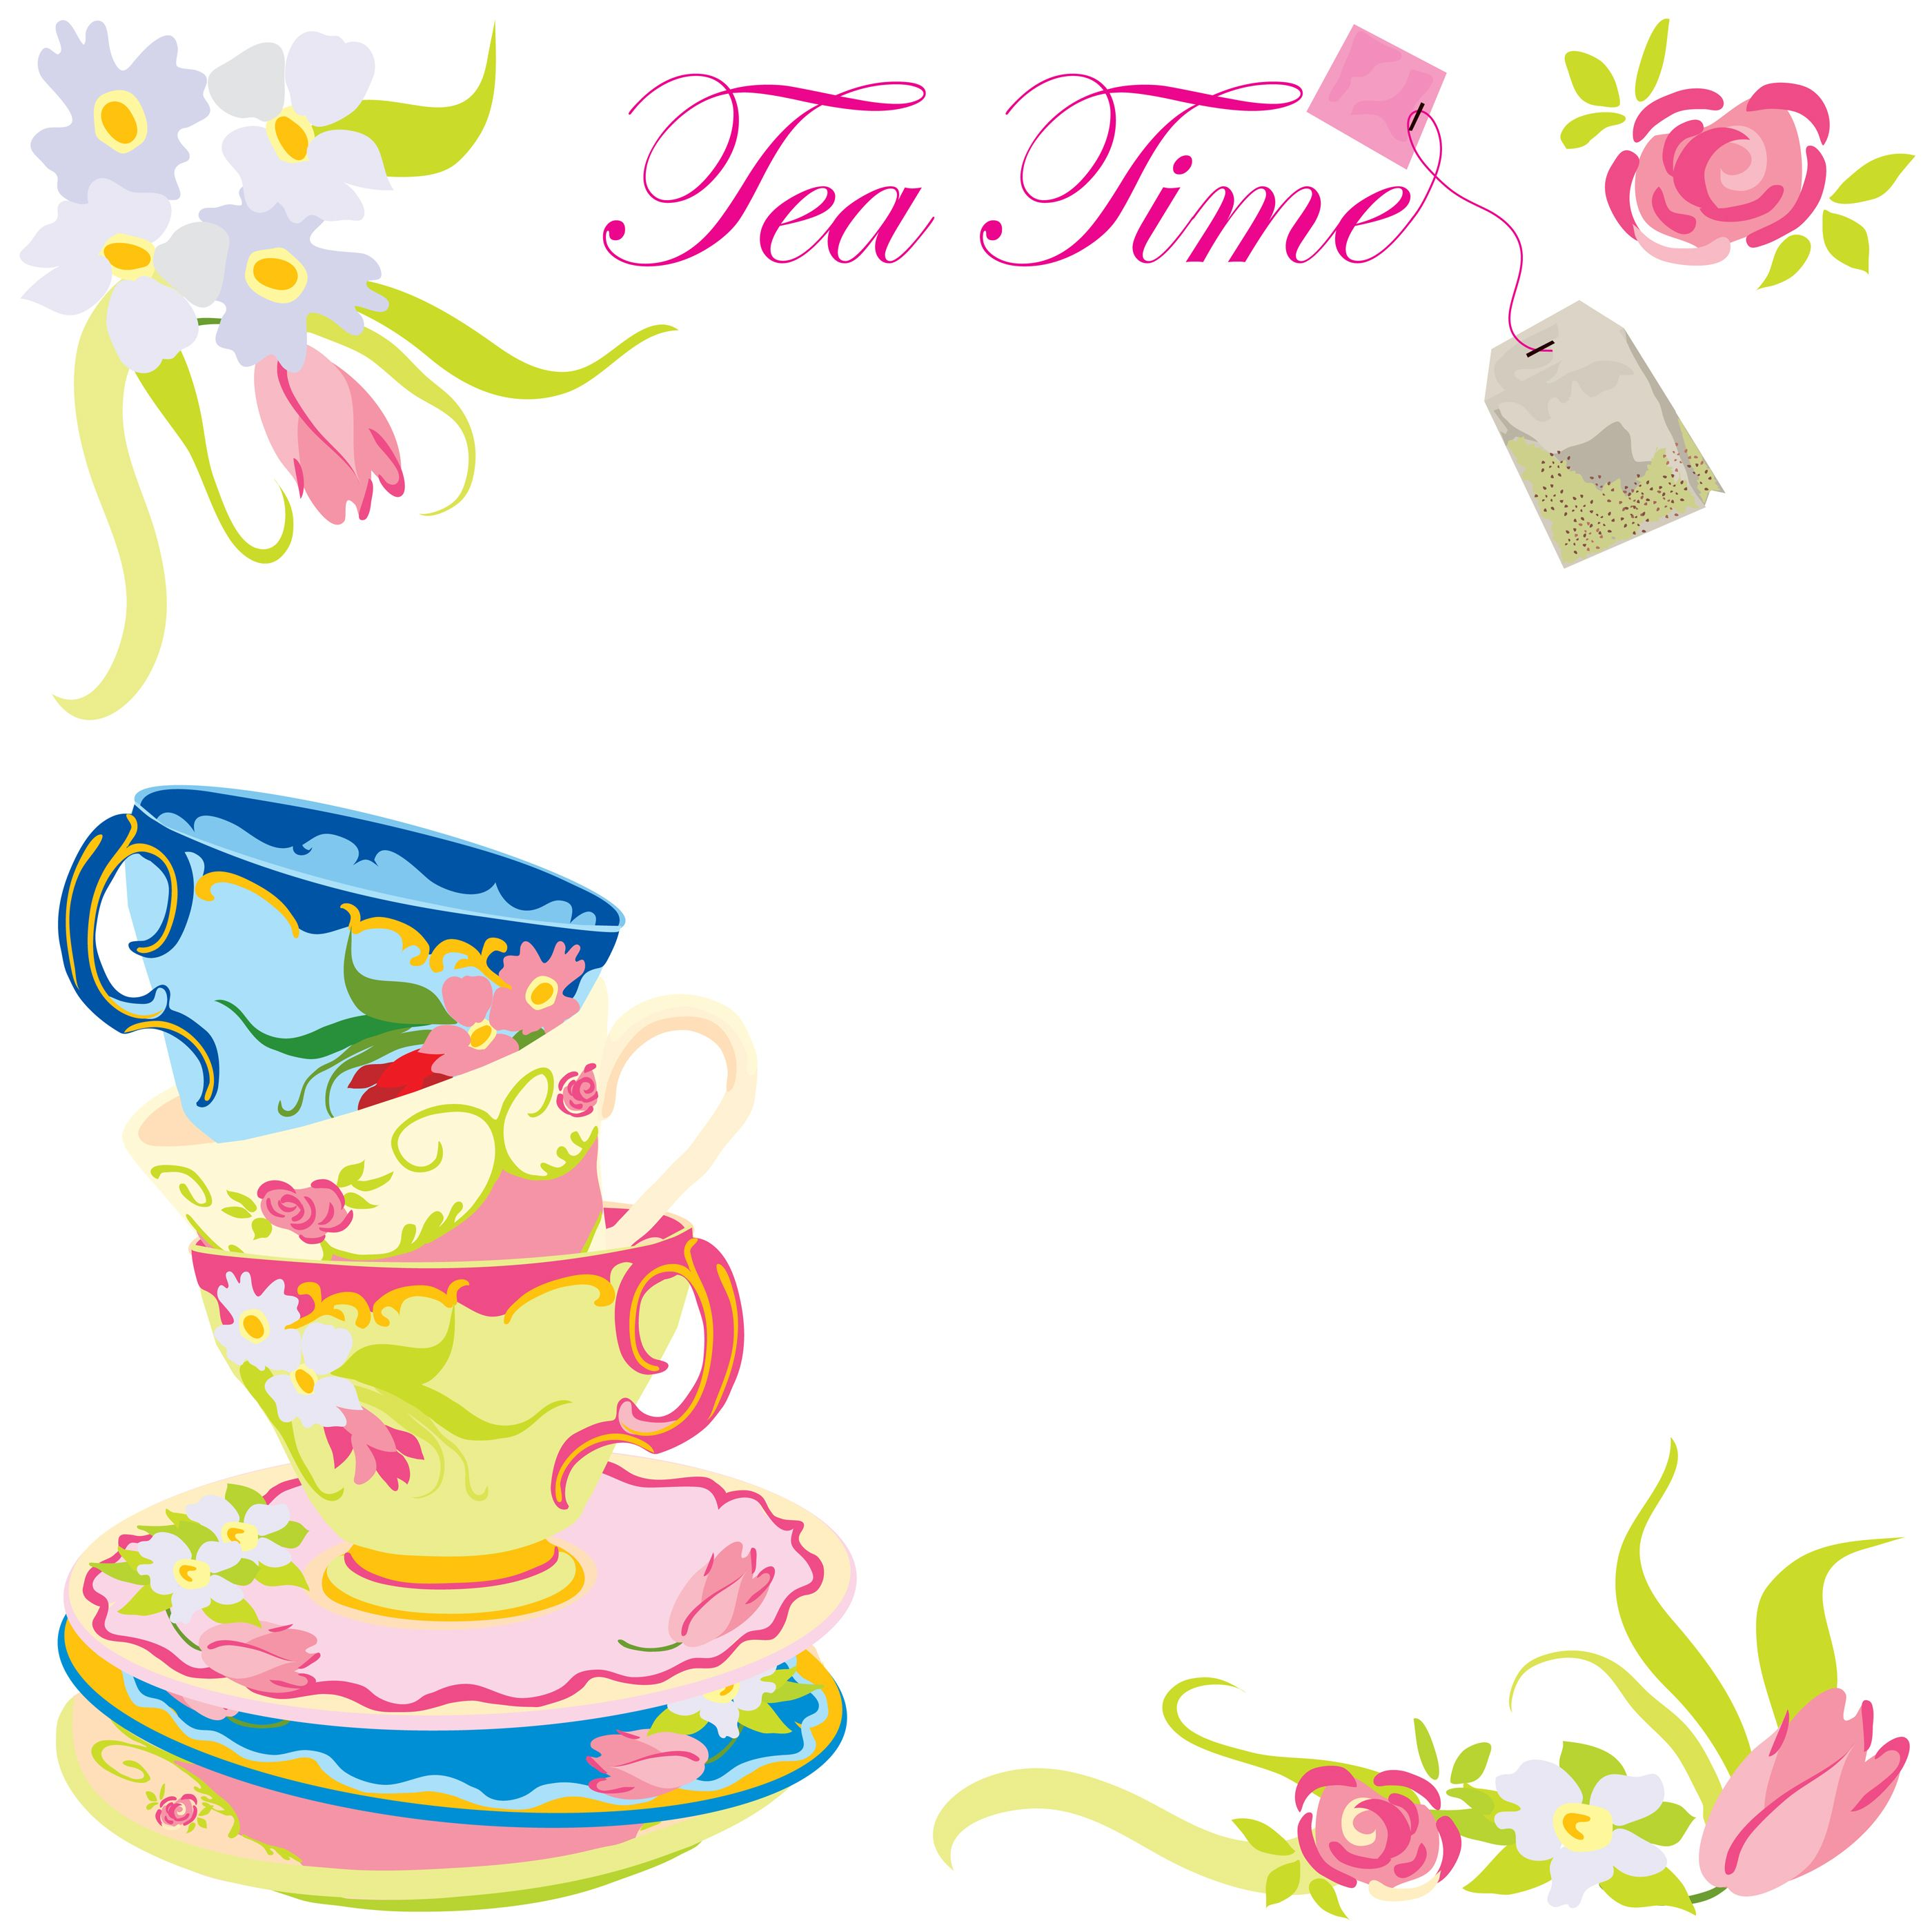 Free afternoon tea party invitation template tea party pinterest free afternoon tea party invitation template tea party pinterest party invitation templates tea party invitations and afternoon tea parties stopboris Choice Image